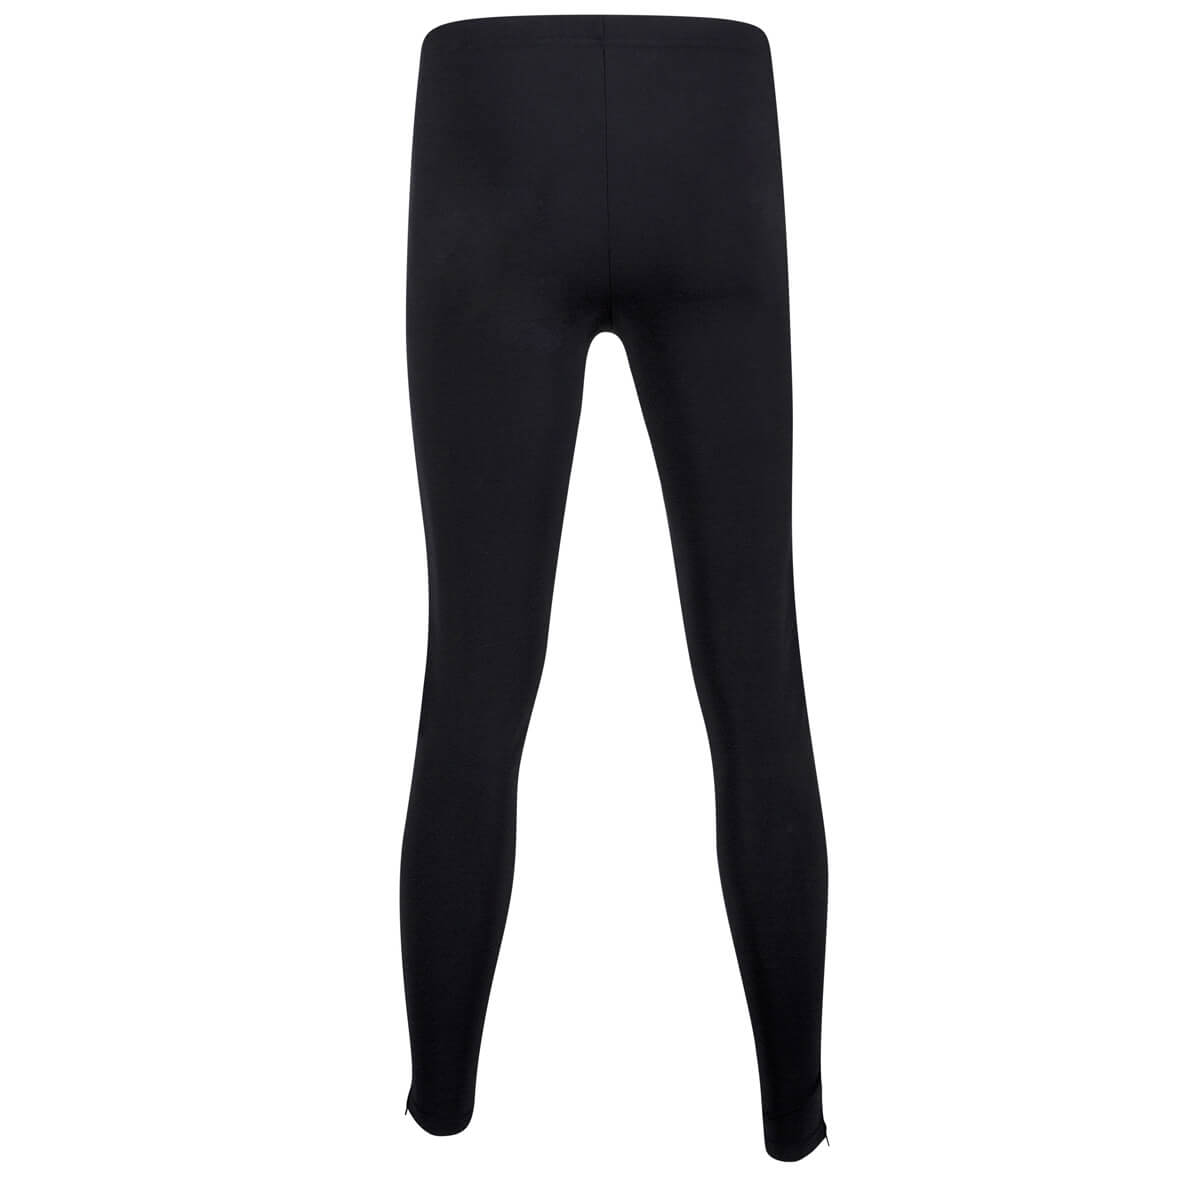 Santini CX Side Zip Warm Up Tights - Black